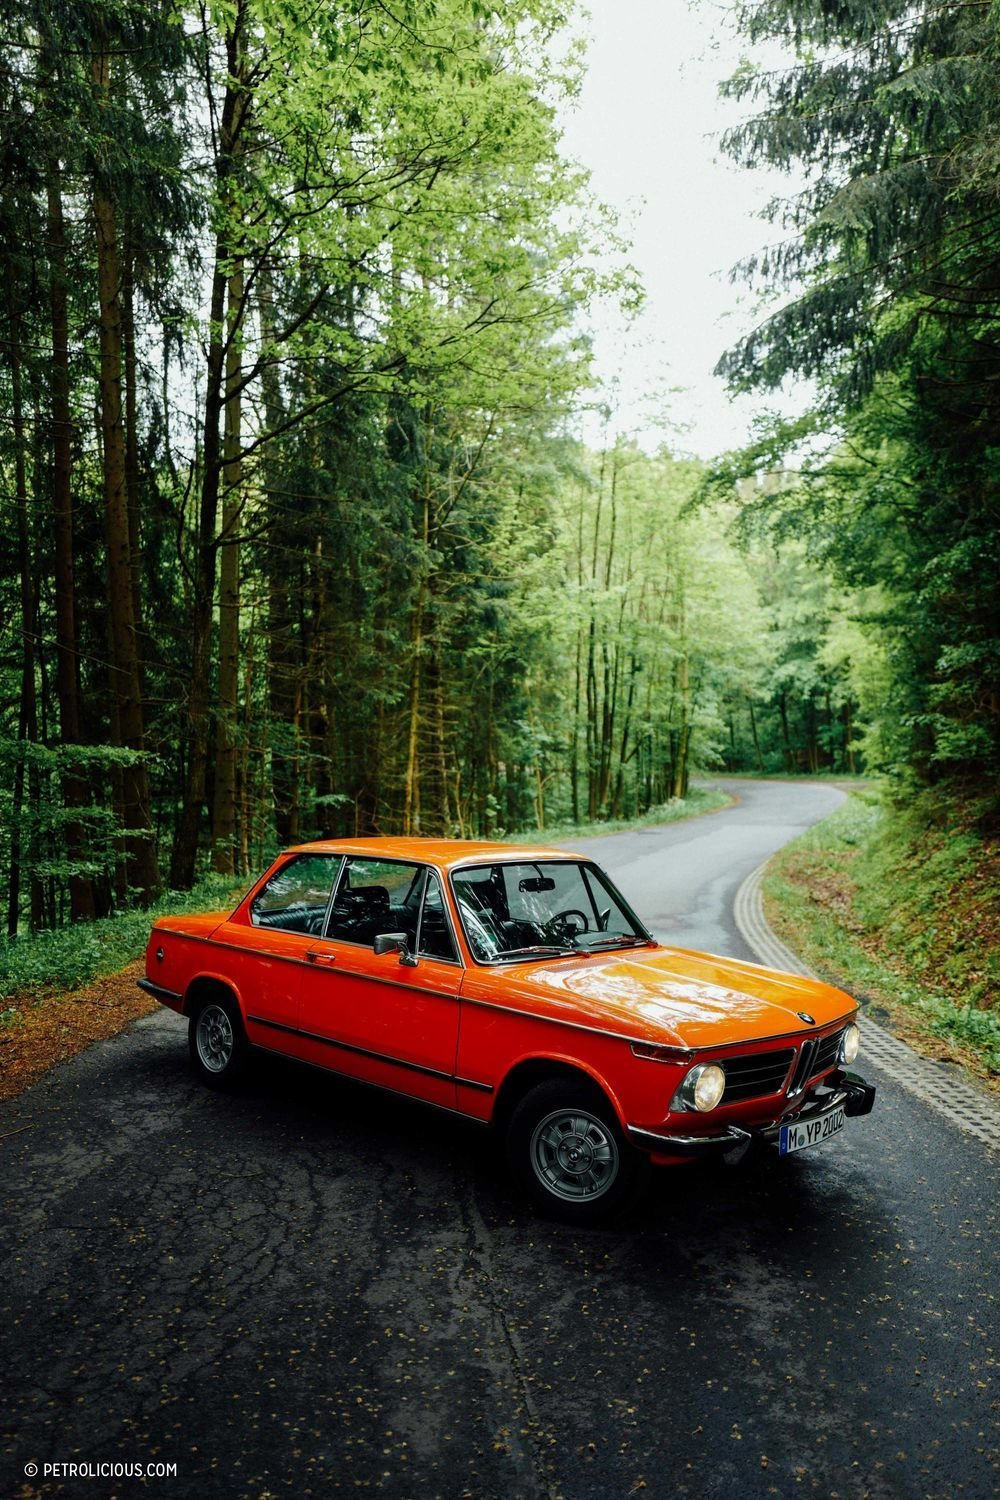 Photo 4 of 8 in This Is What It's Like To Drive The BMW 2002 Tii